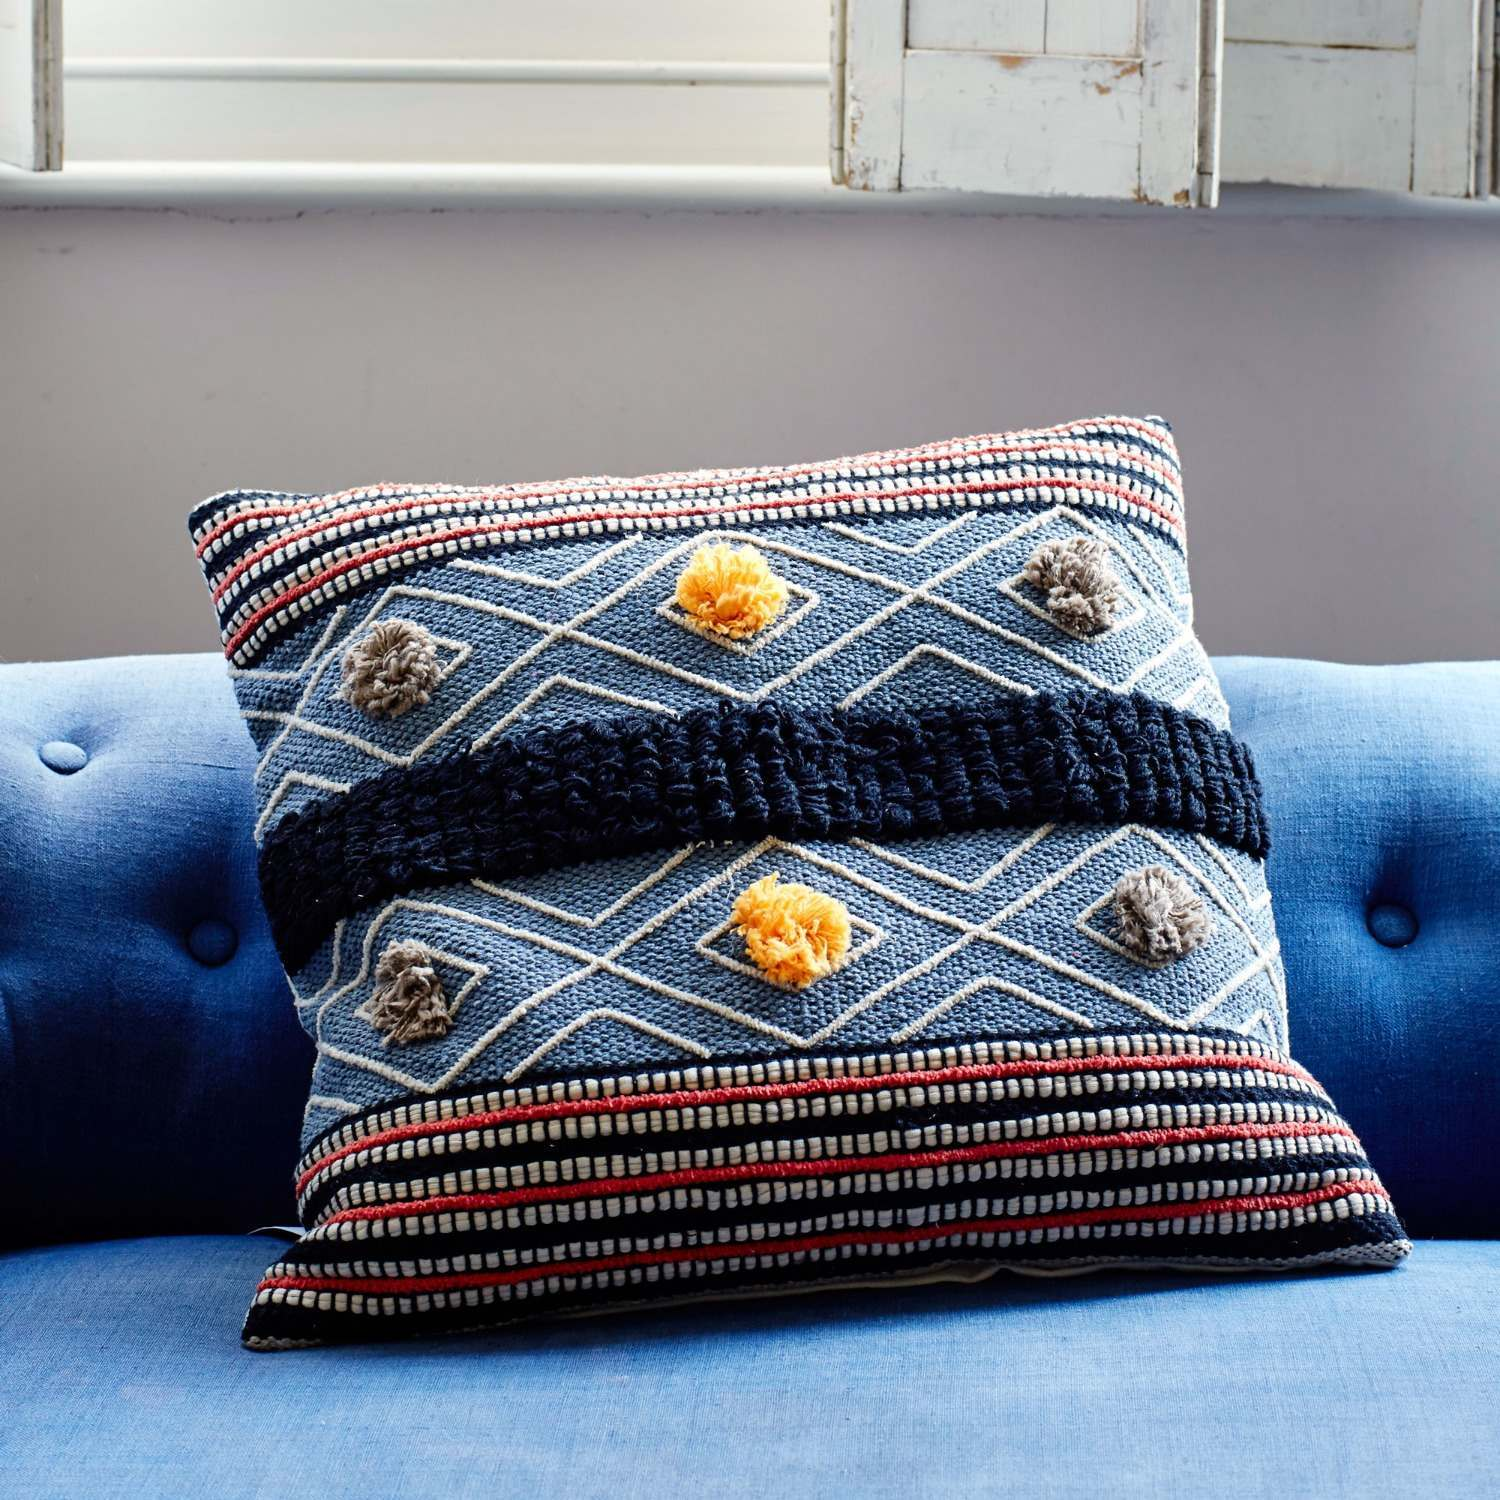 An image of Fes Cushion